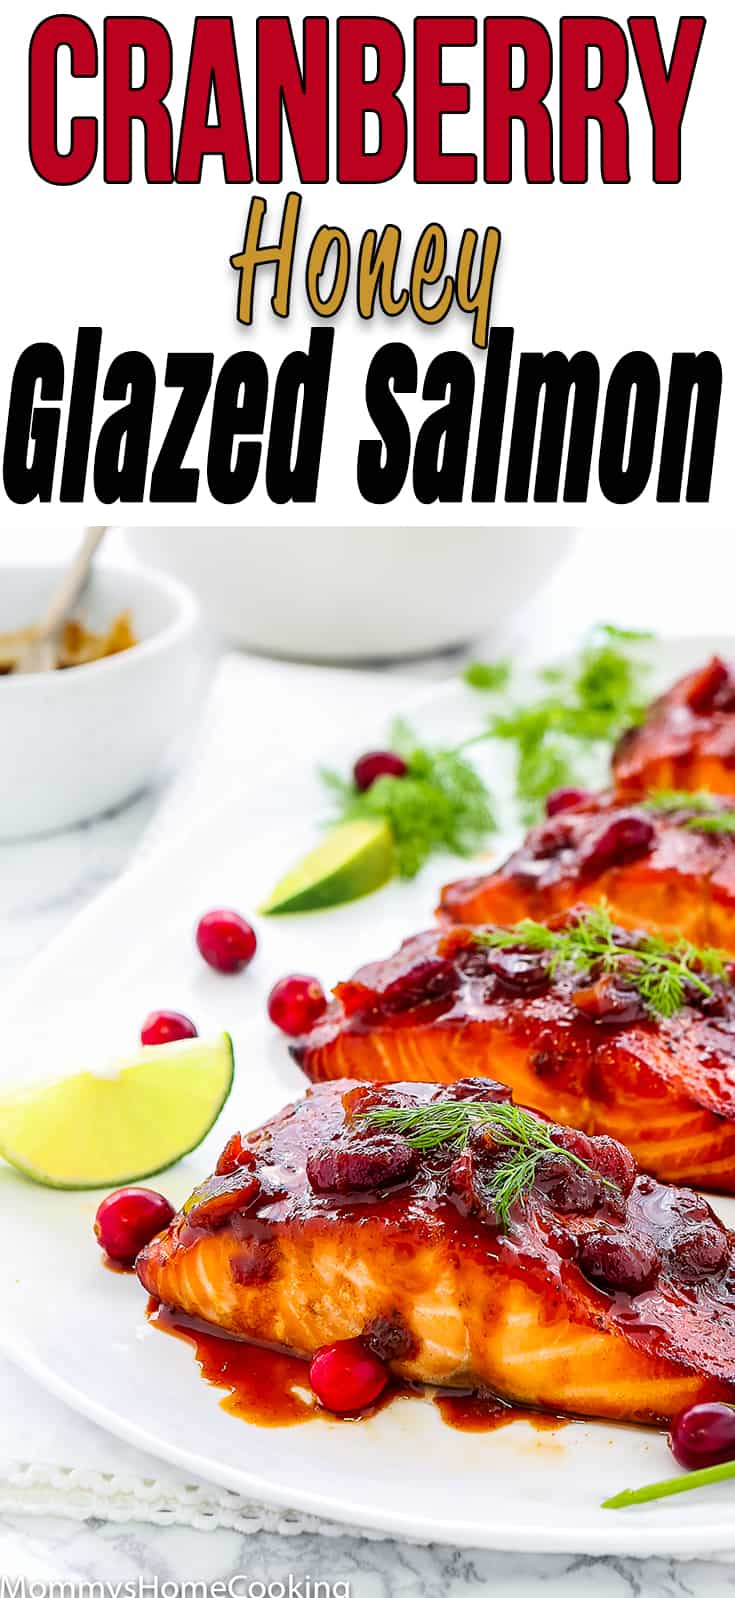 This Cranberry Honey Glazed Salmon is simple yet impressive, and tastes absolutely divine!! It's zesty, sweet, savory, and flaky. It comes together in about 30 minutes. #recipe #salmon #easy #cranberry #dinner